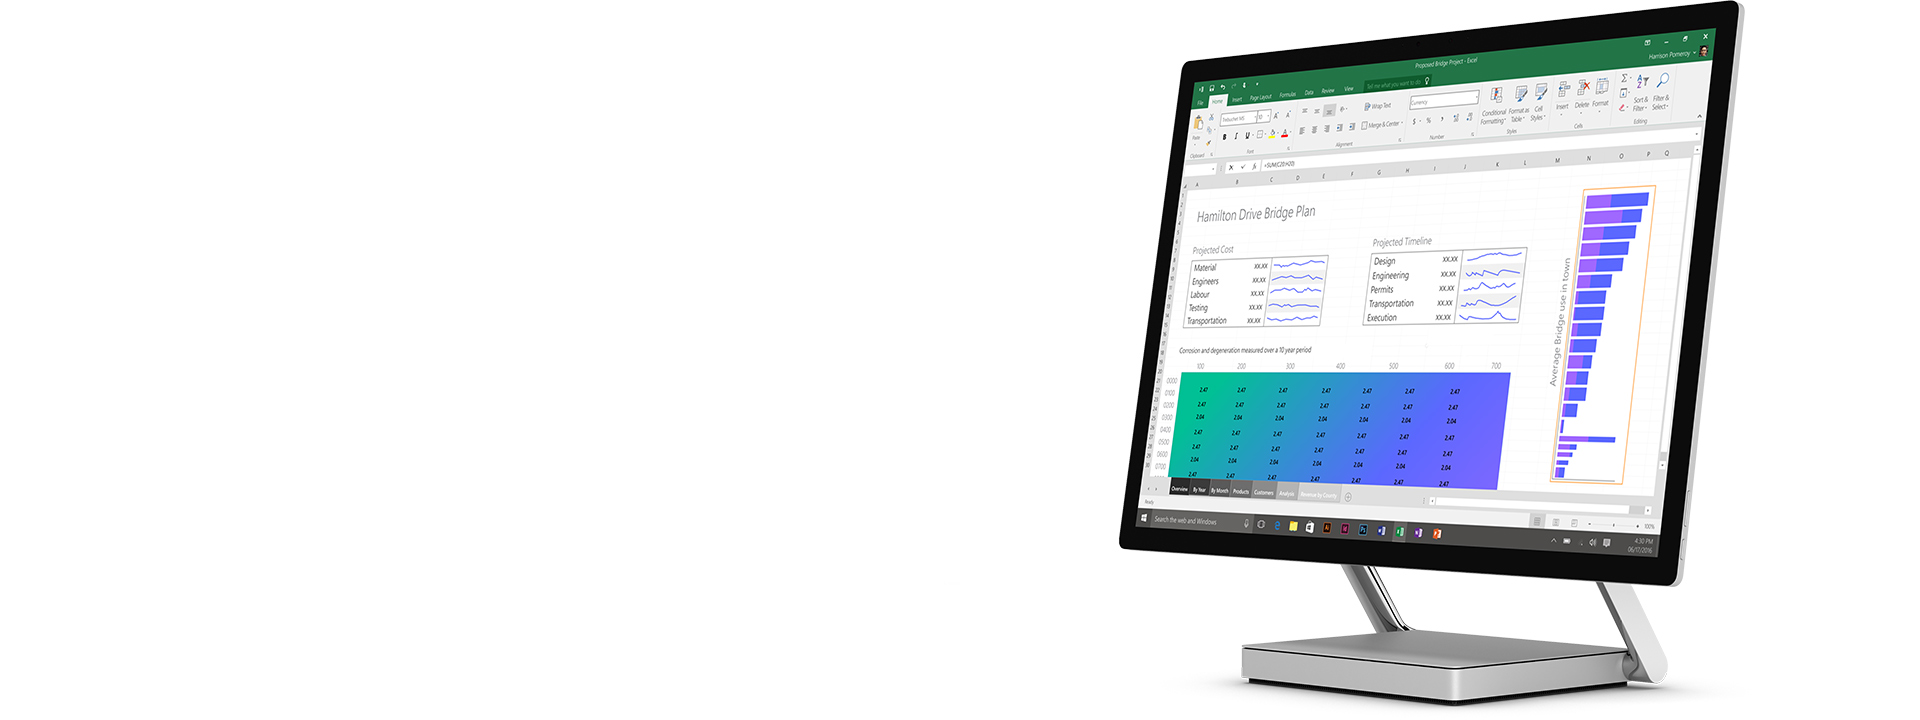 Surface Studio in desktop mode with Excel spreadsheet open on the screen